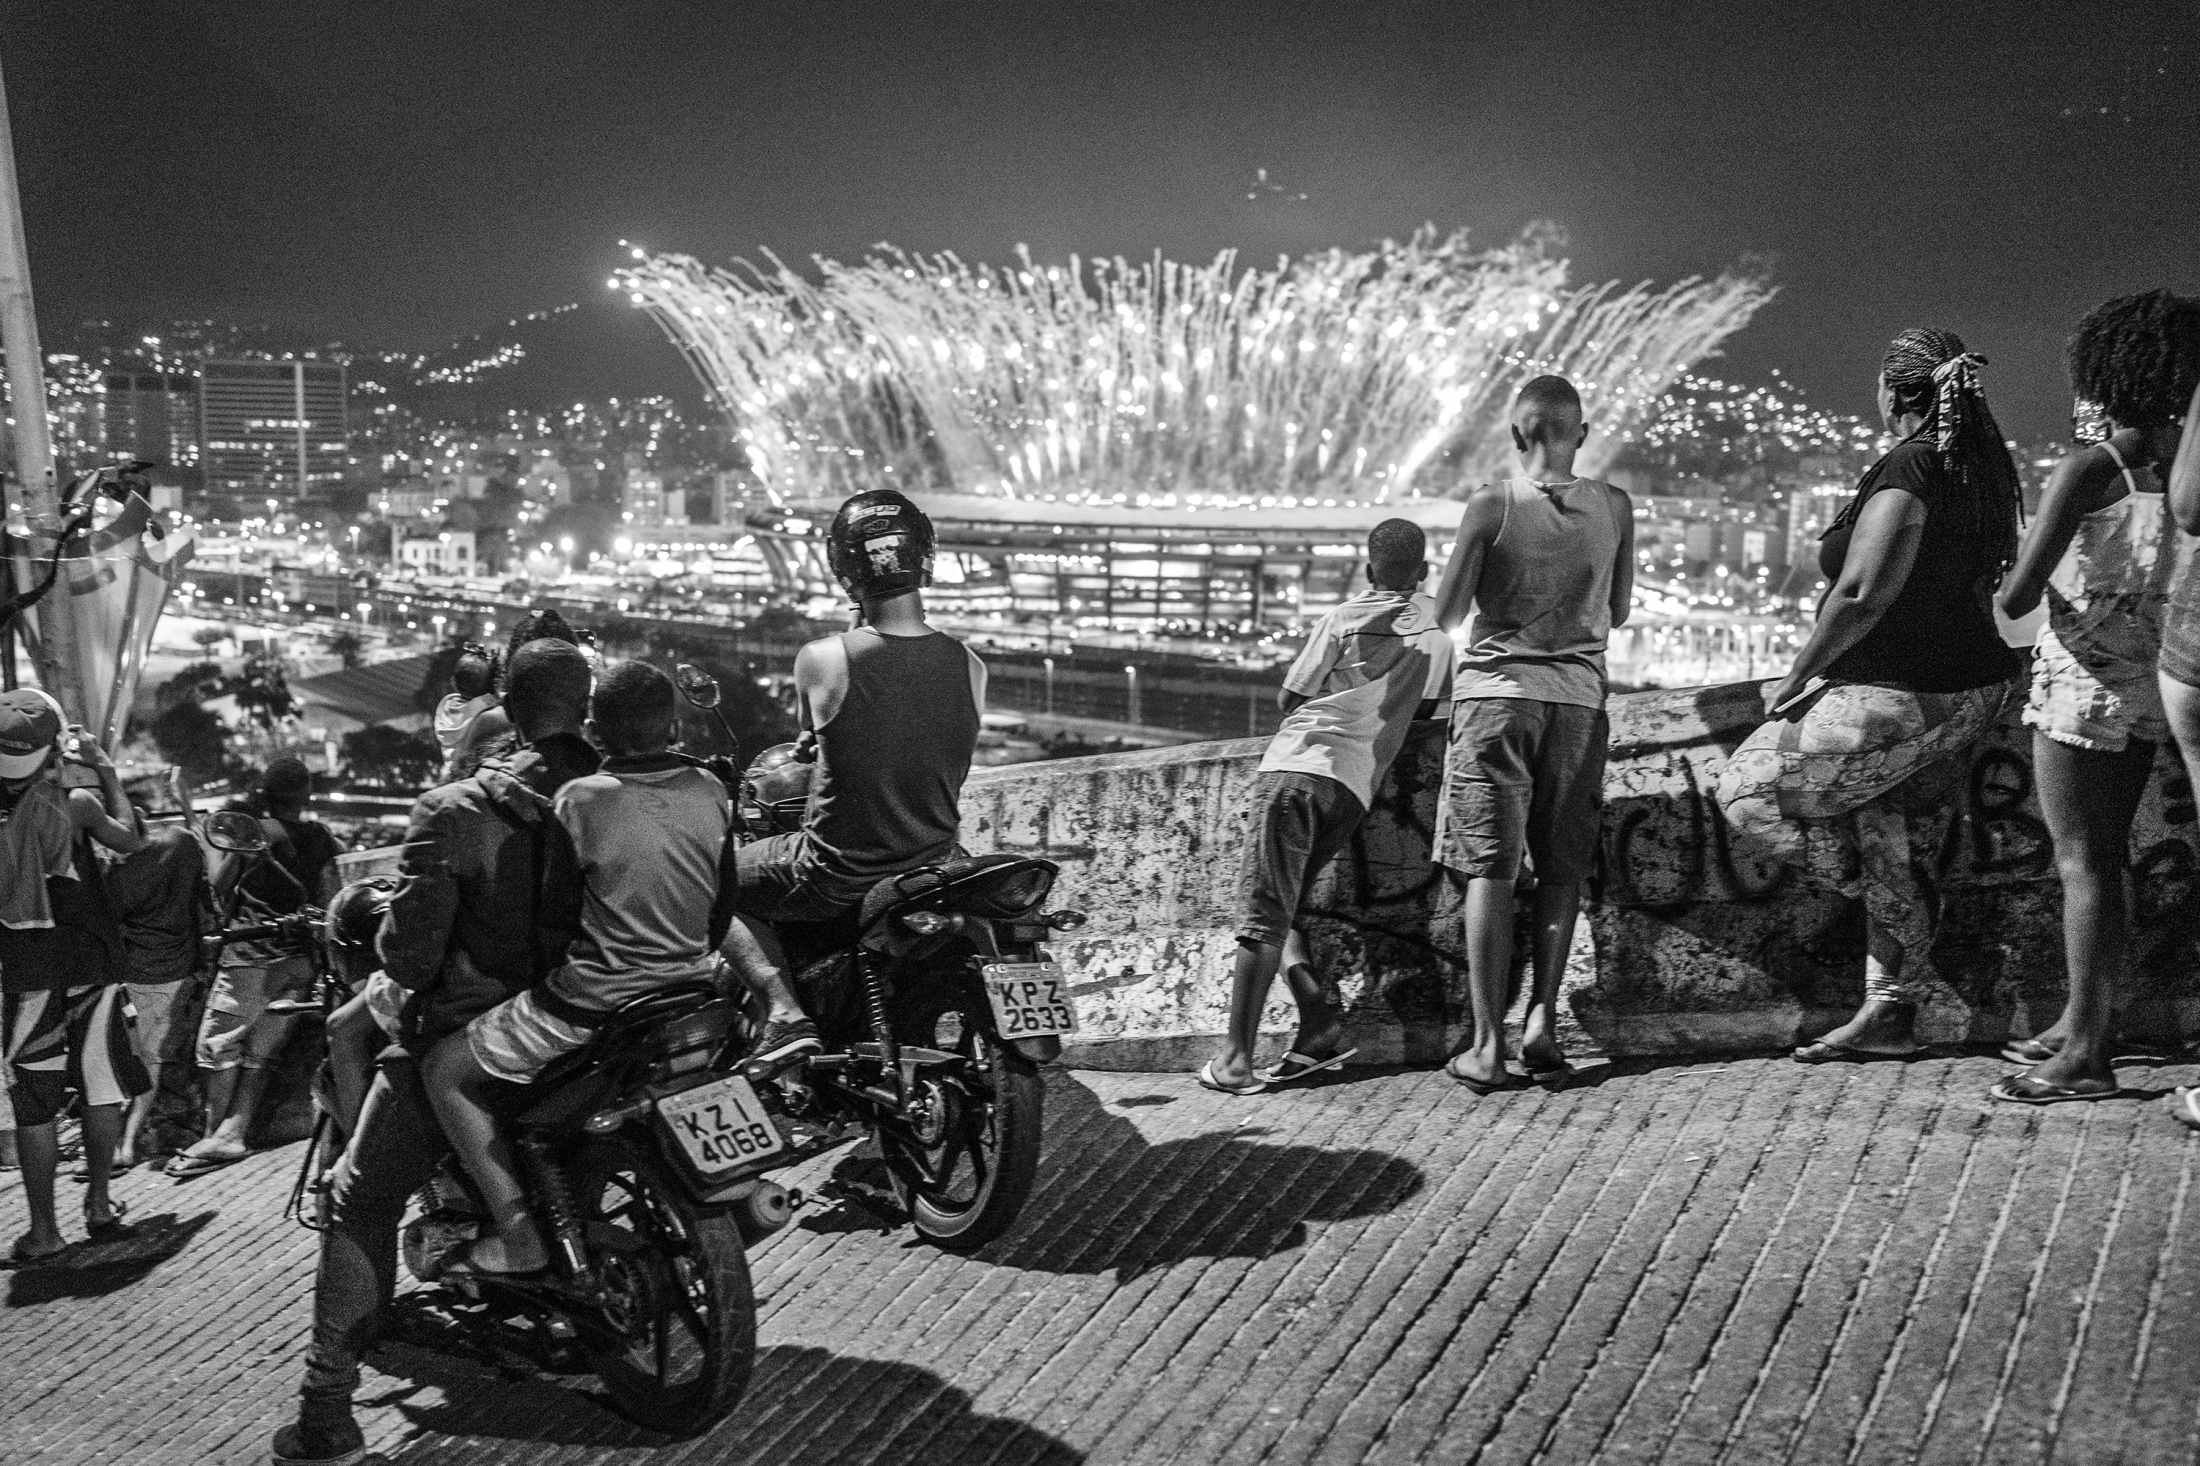 Residents of the Mangueira favela look at the fireworks during the opening ceremony of the summer Olympic games in the Maracanã stadium. Tickets to attend the opening ceremony inside the stadium reached a price of USD700. August 2016.